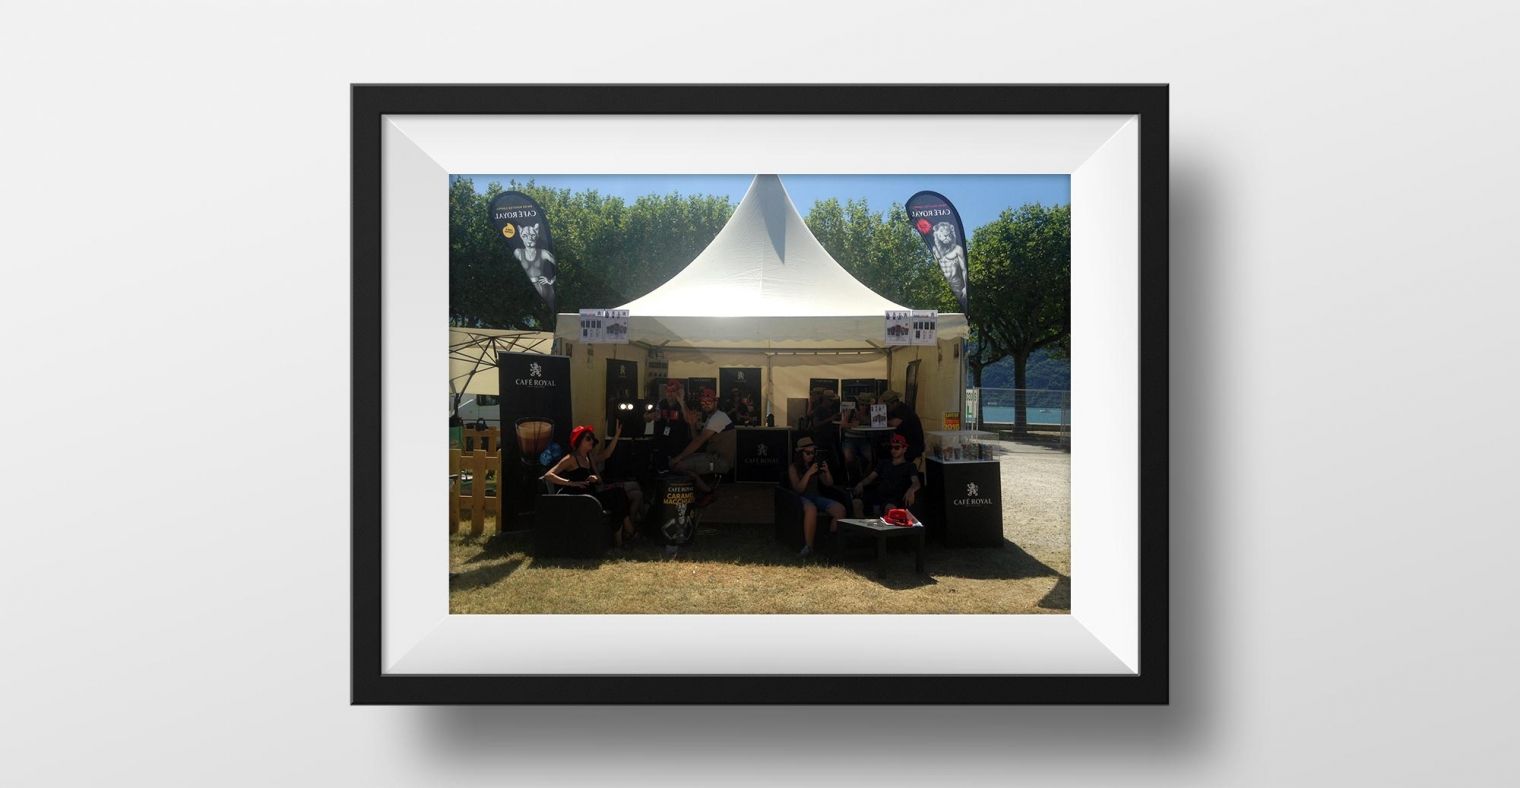 Location Photo Booth festival